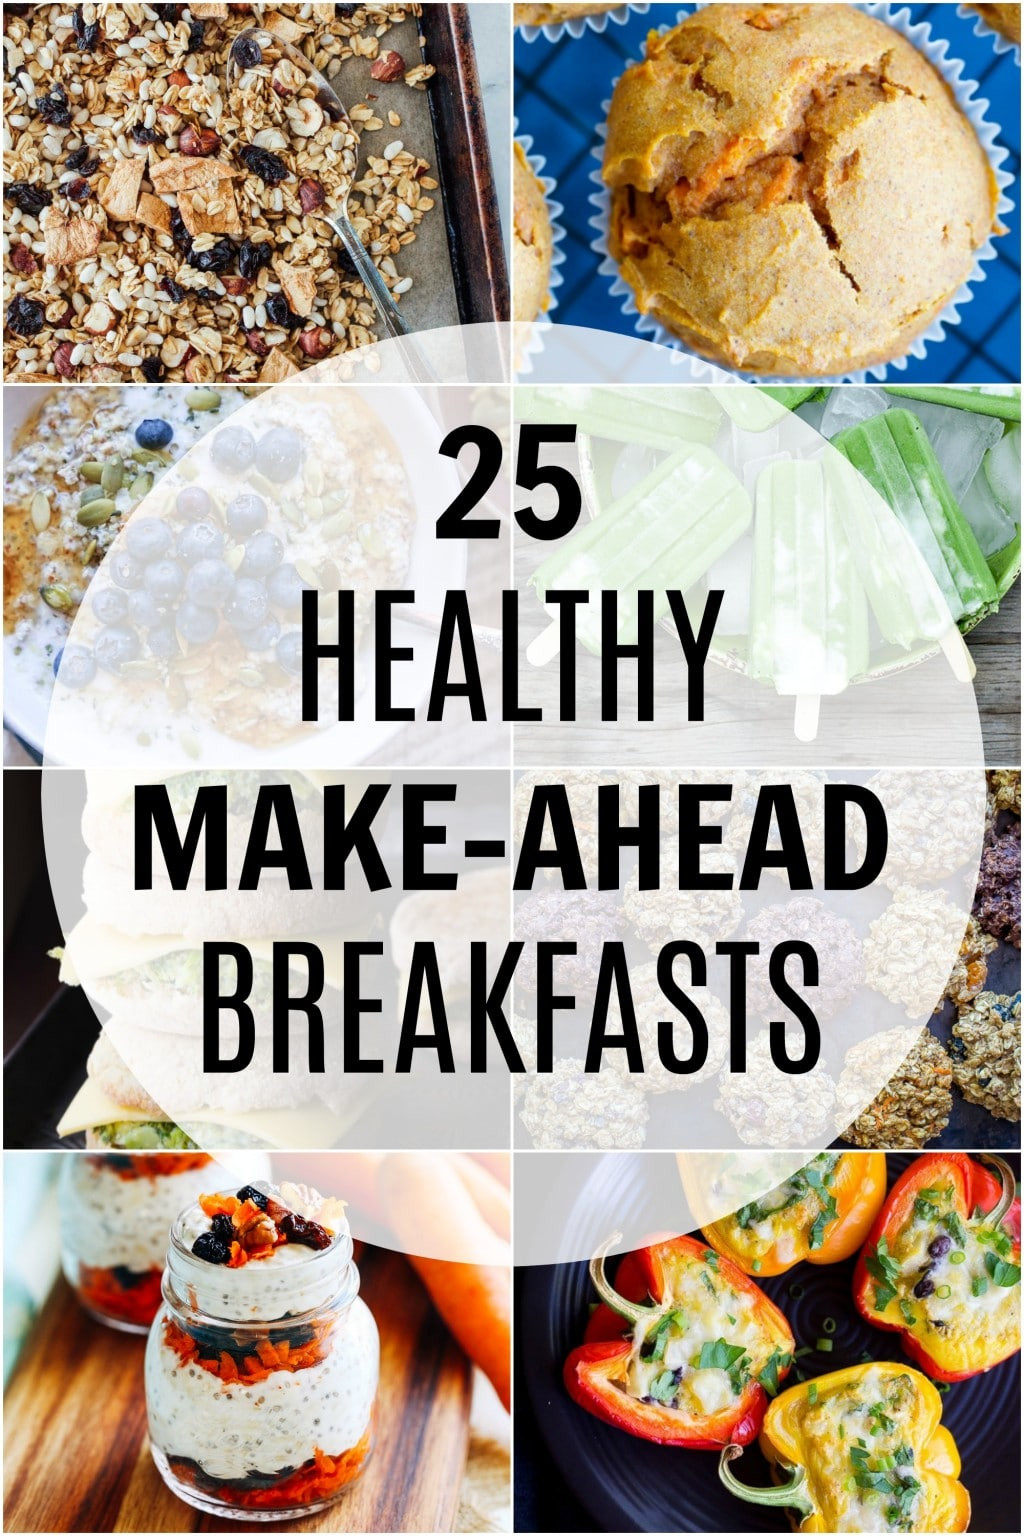 Healthy Make Ahead Snacks  25 Healthy Make Ahead Breakfast Recipes She Likes Food